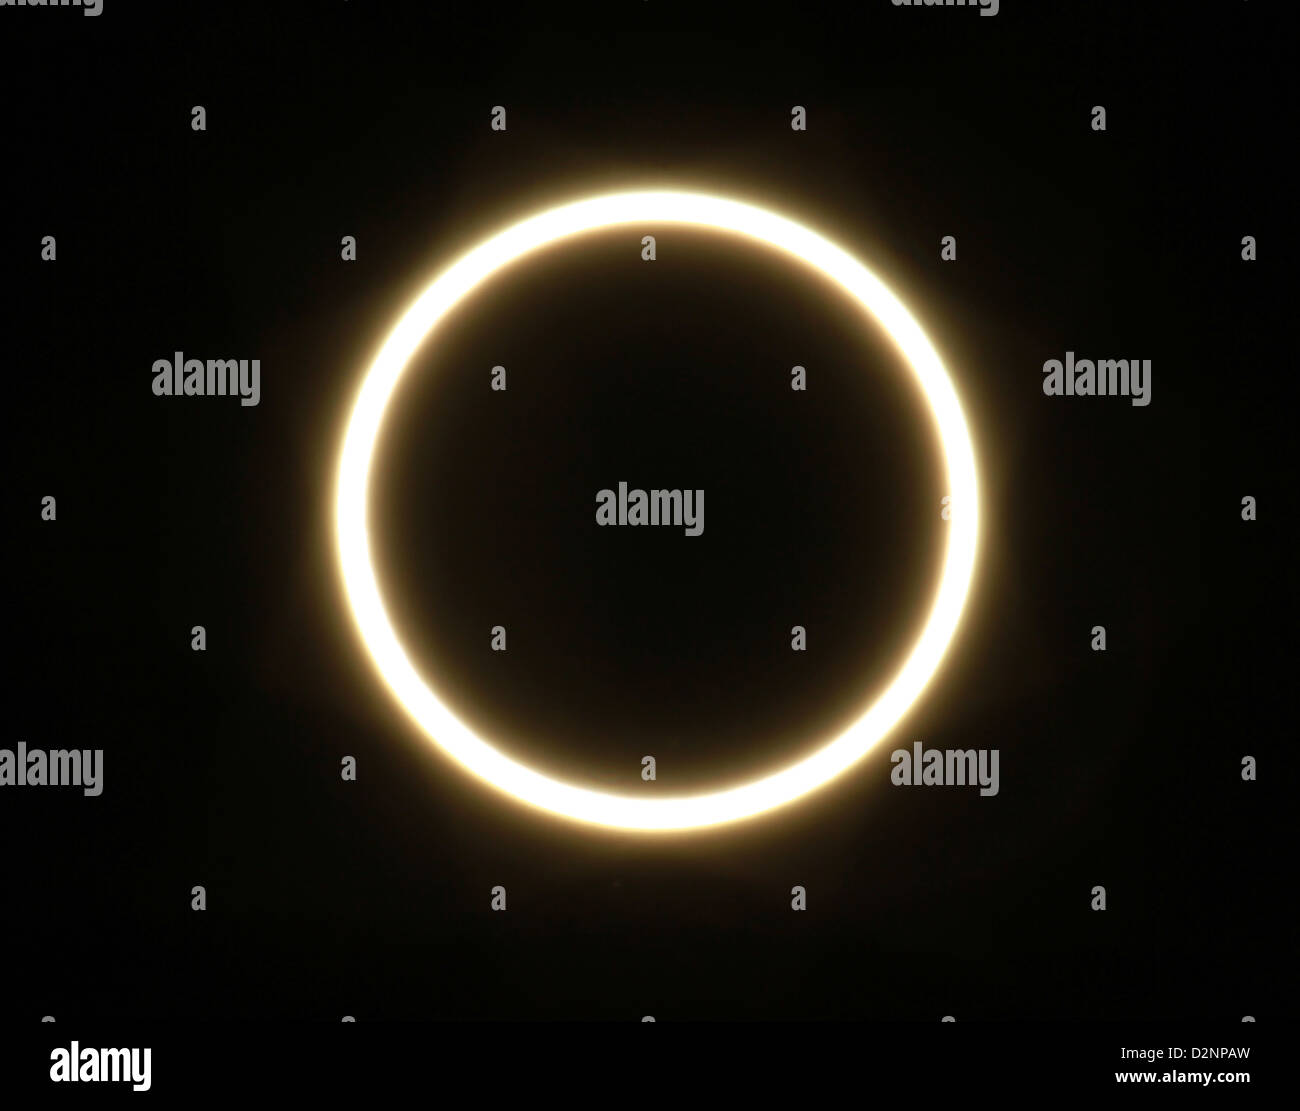 Partial eclipse of the sun, Navajo Land, Arizona May 2012 - Stock Image